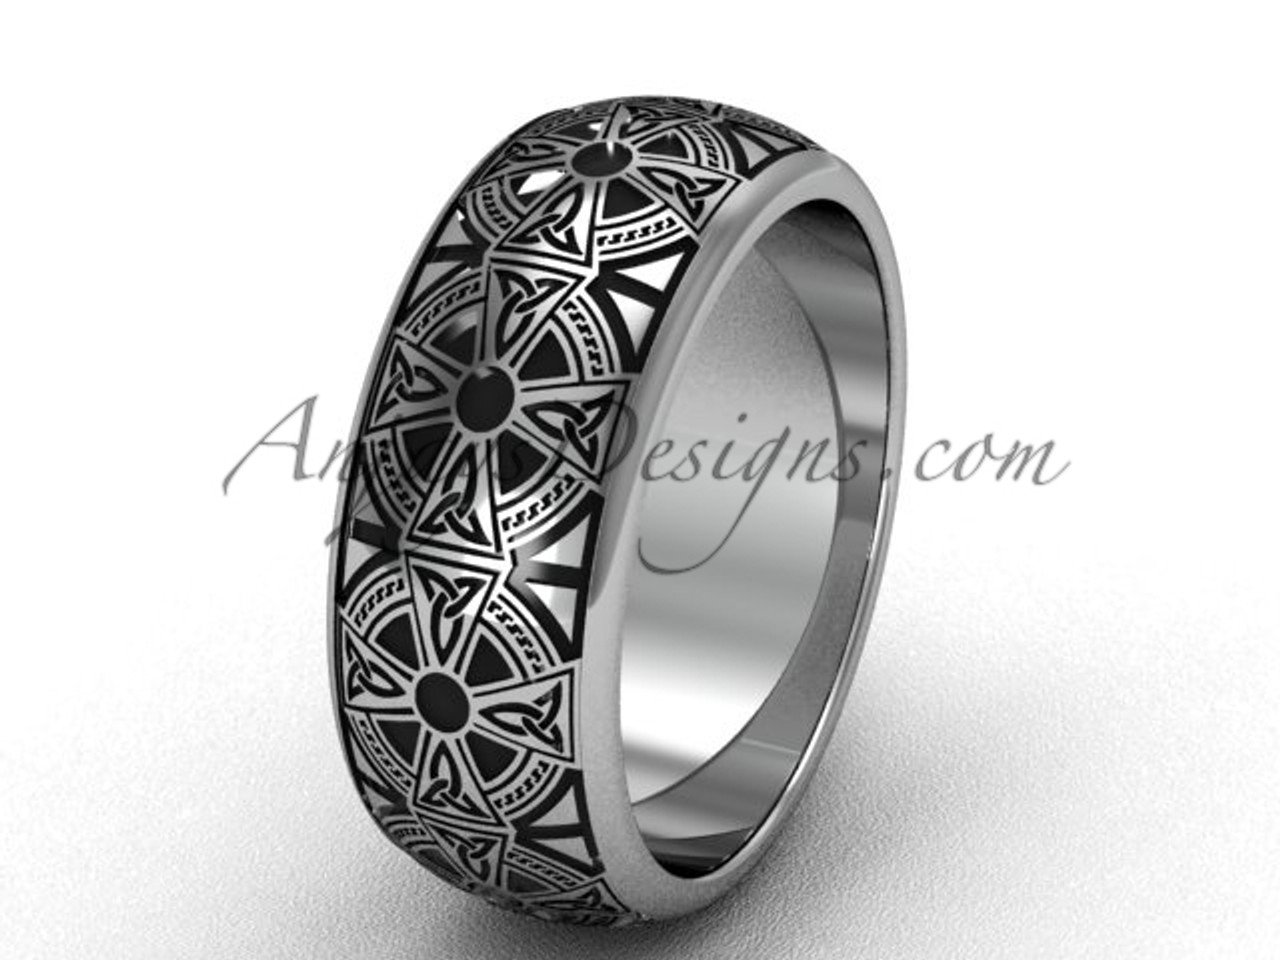 This is a graphic of Simple Bridal Rings, 31k White Gold Celtic Wedding Band, 31.31mm wide Band SGT6313G